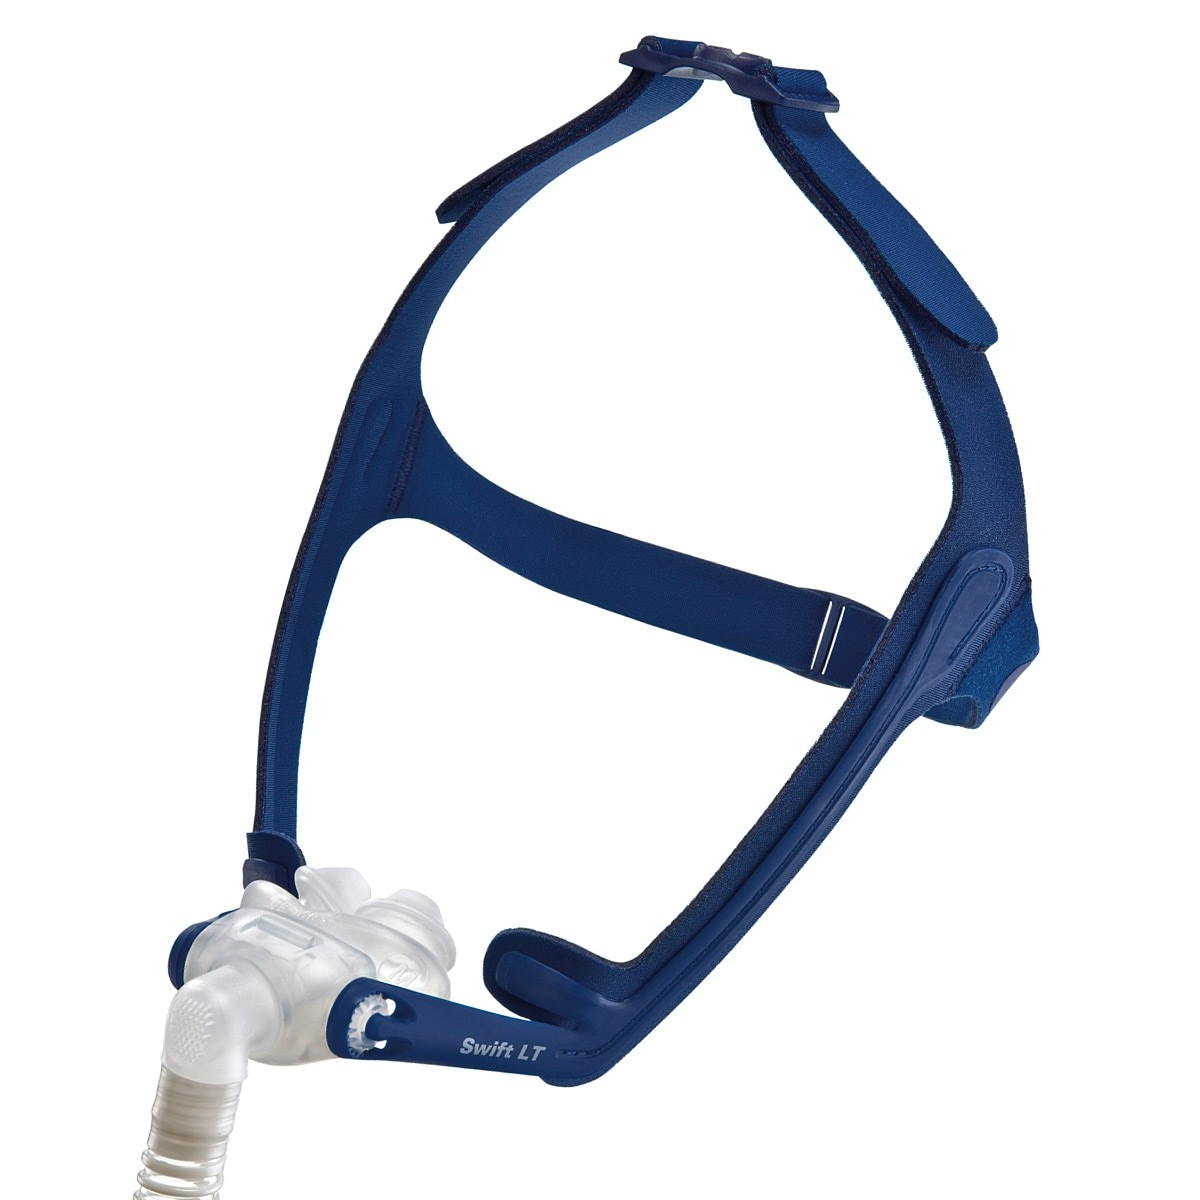 Swift LT Nasal Pillow CPAP Mask with Headgear